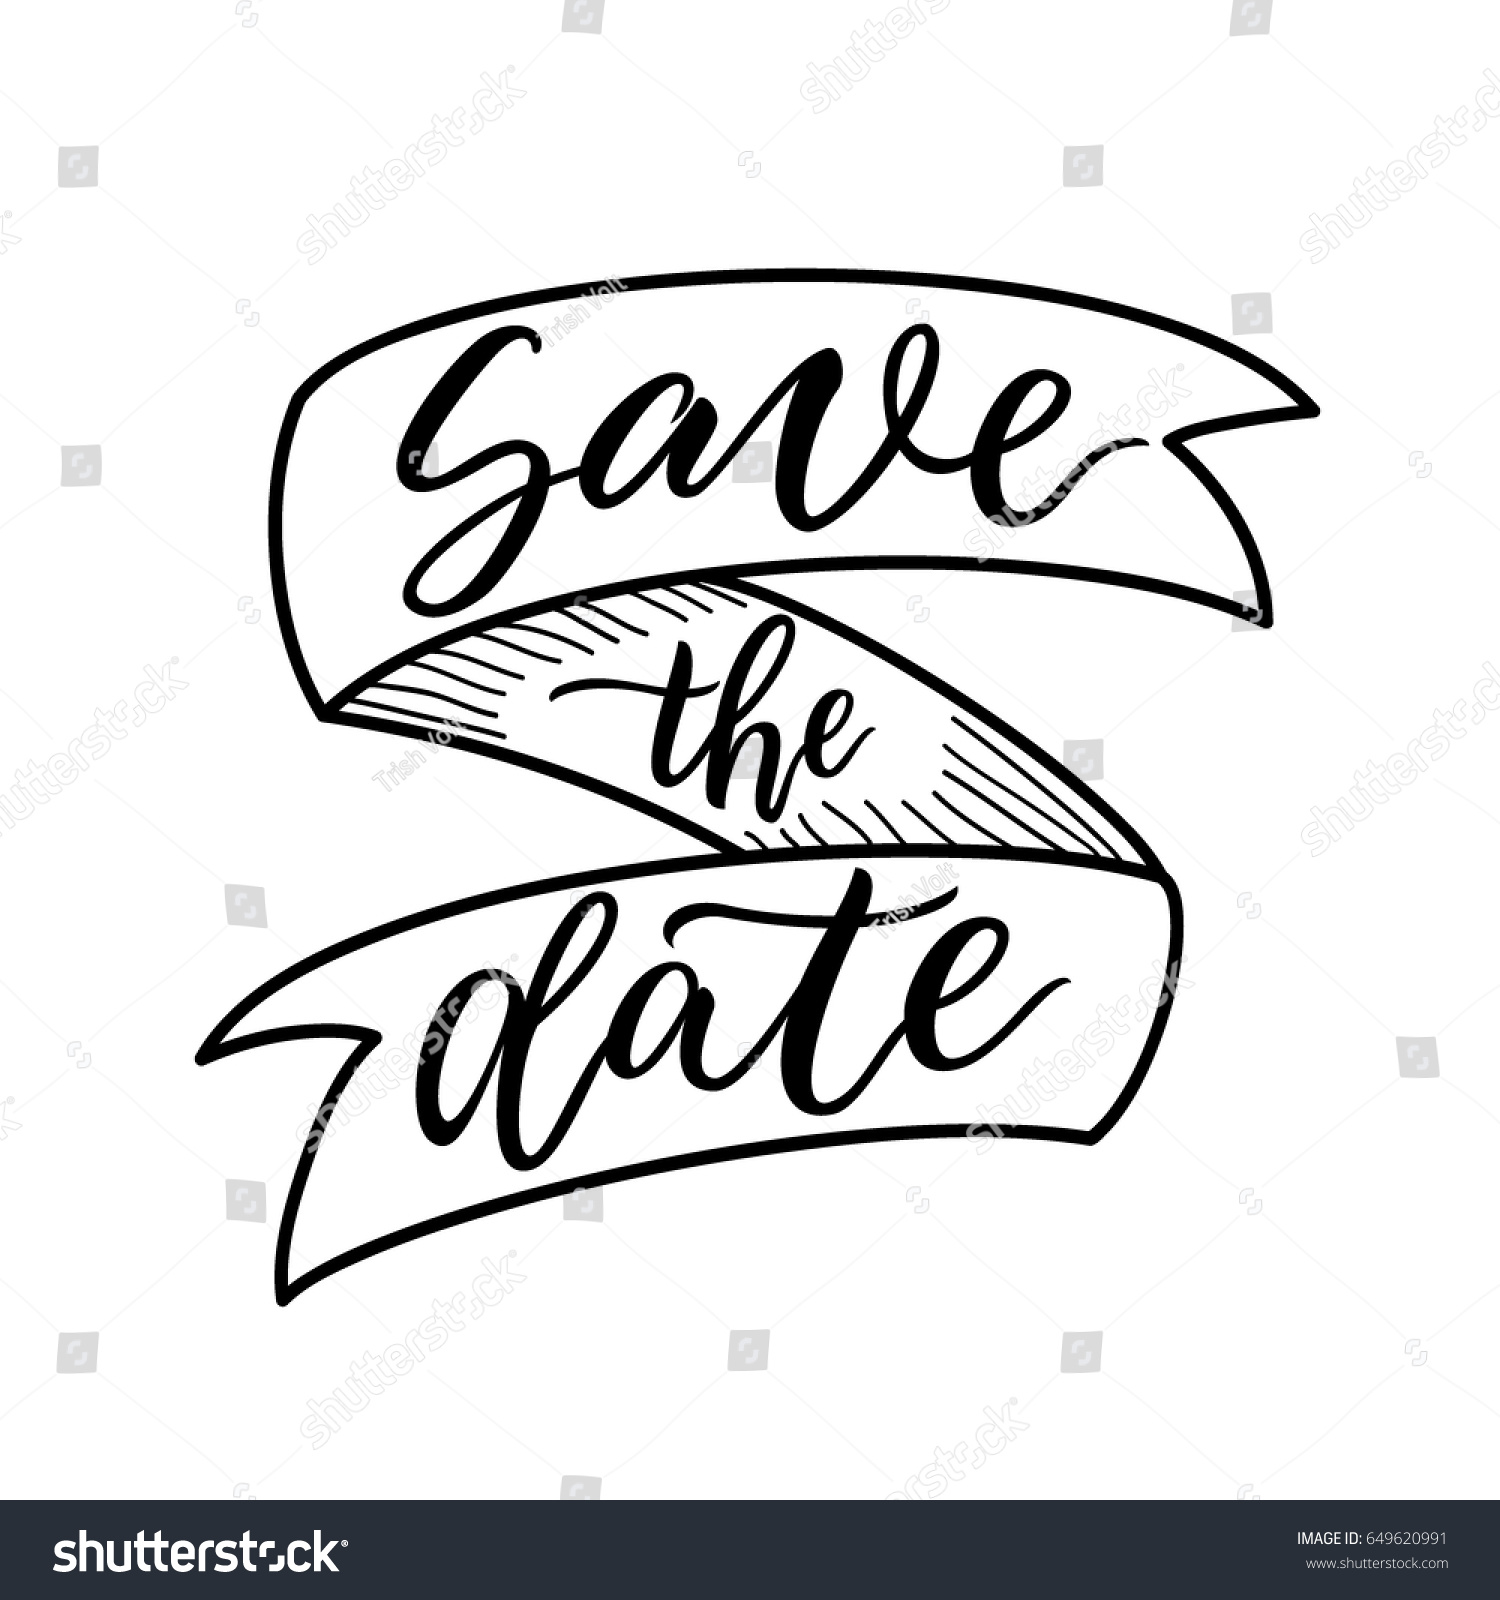 Save Date Sign Ribbon Banner Site Stock Vector 649620991 ...